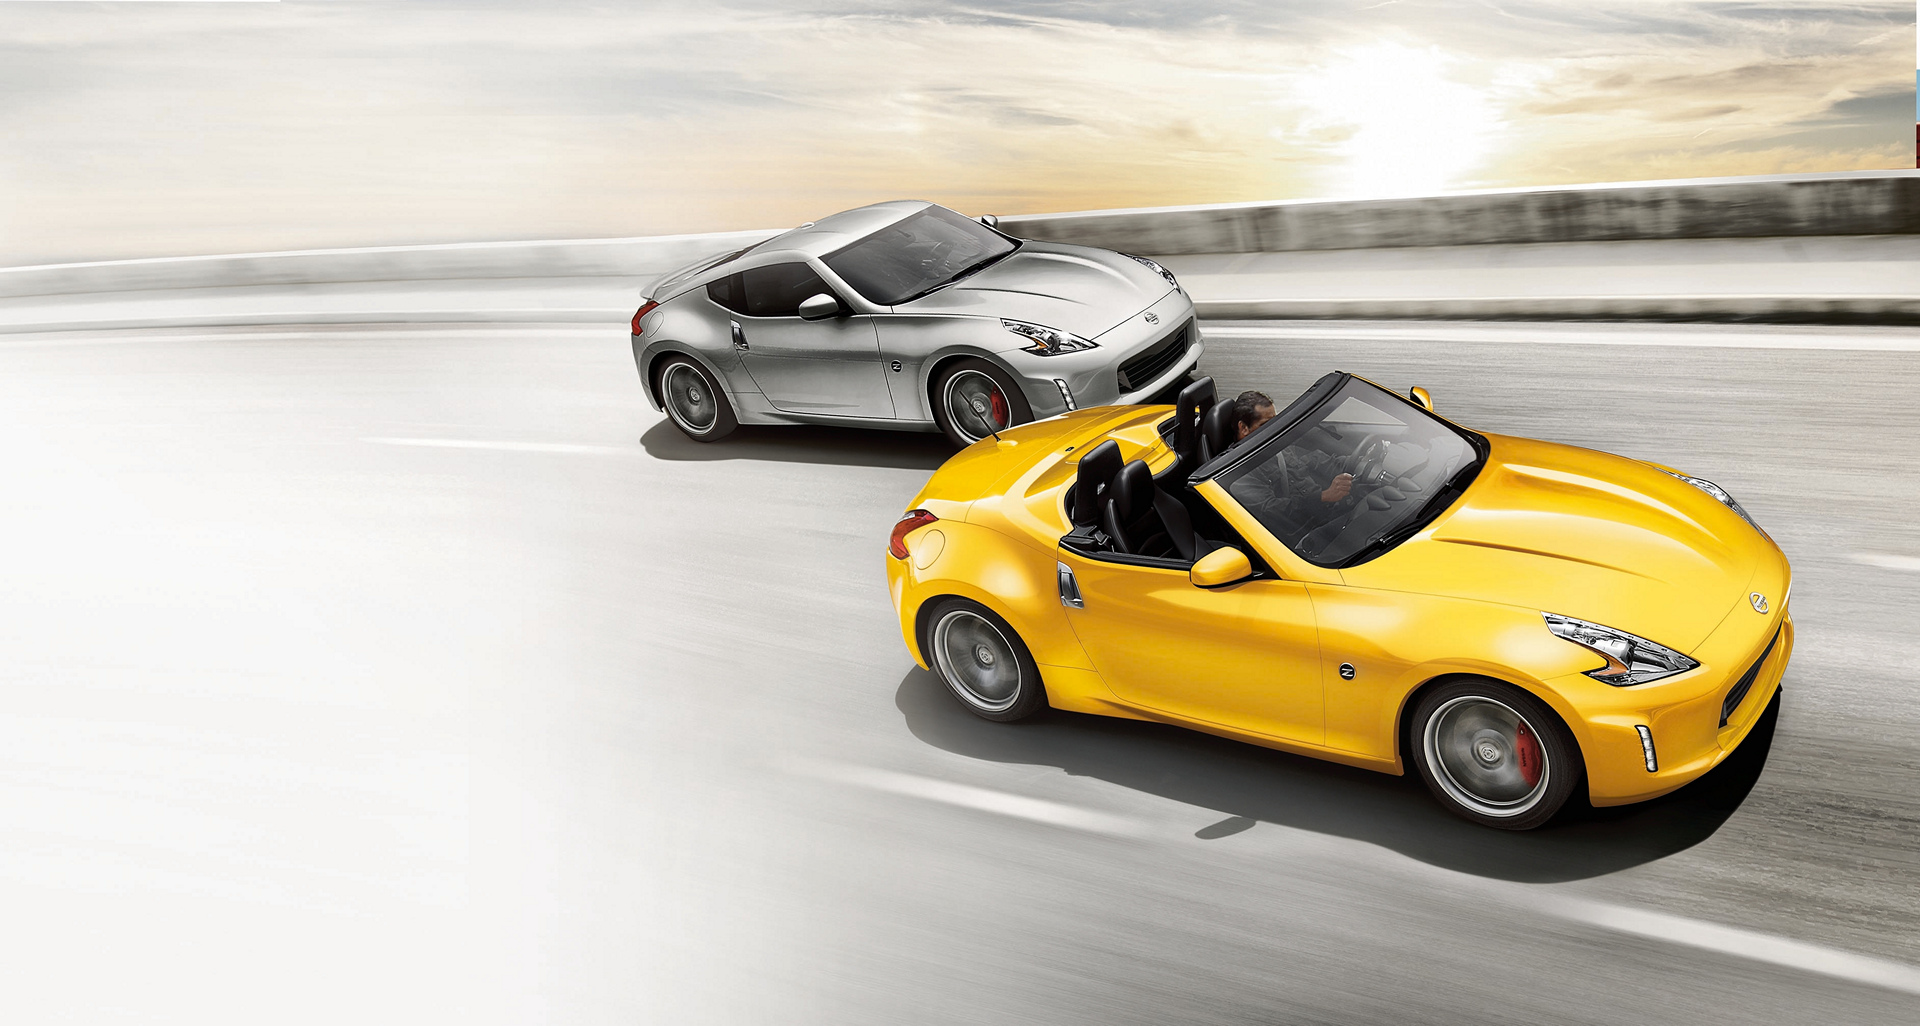 2017 Nissan Z Coupe and Roadster © Nissan Motor Co., Ltd.